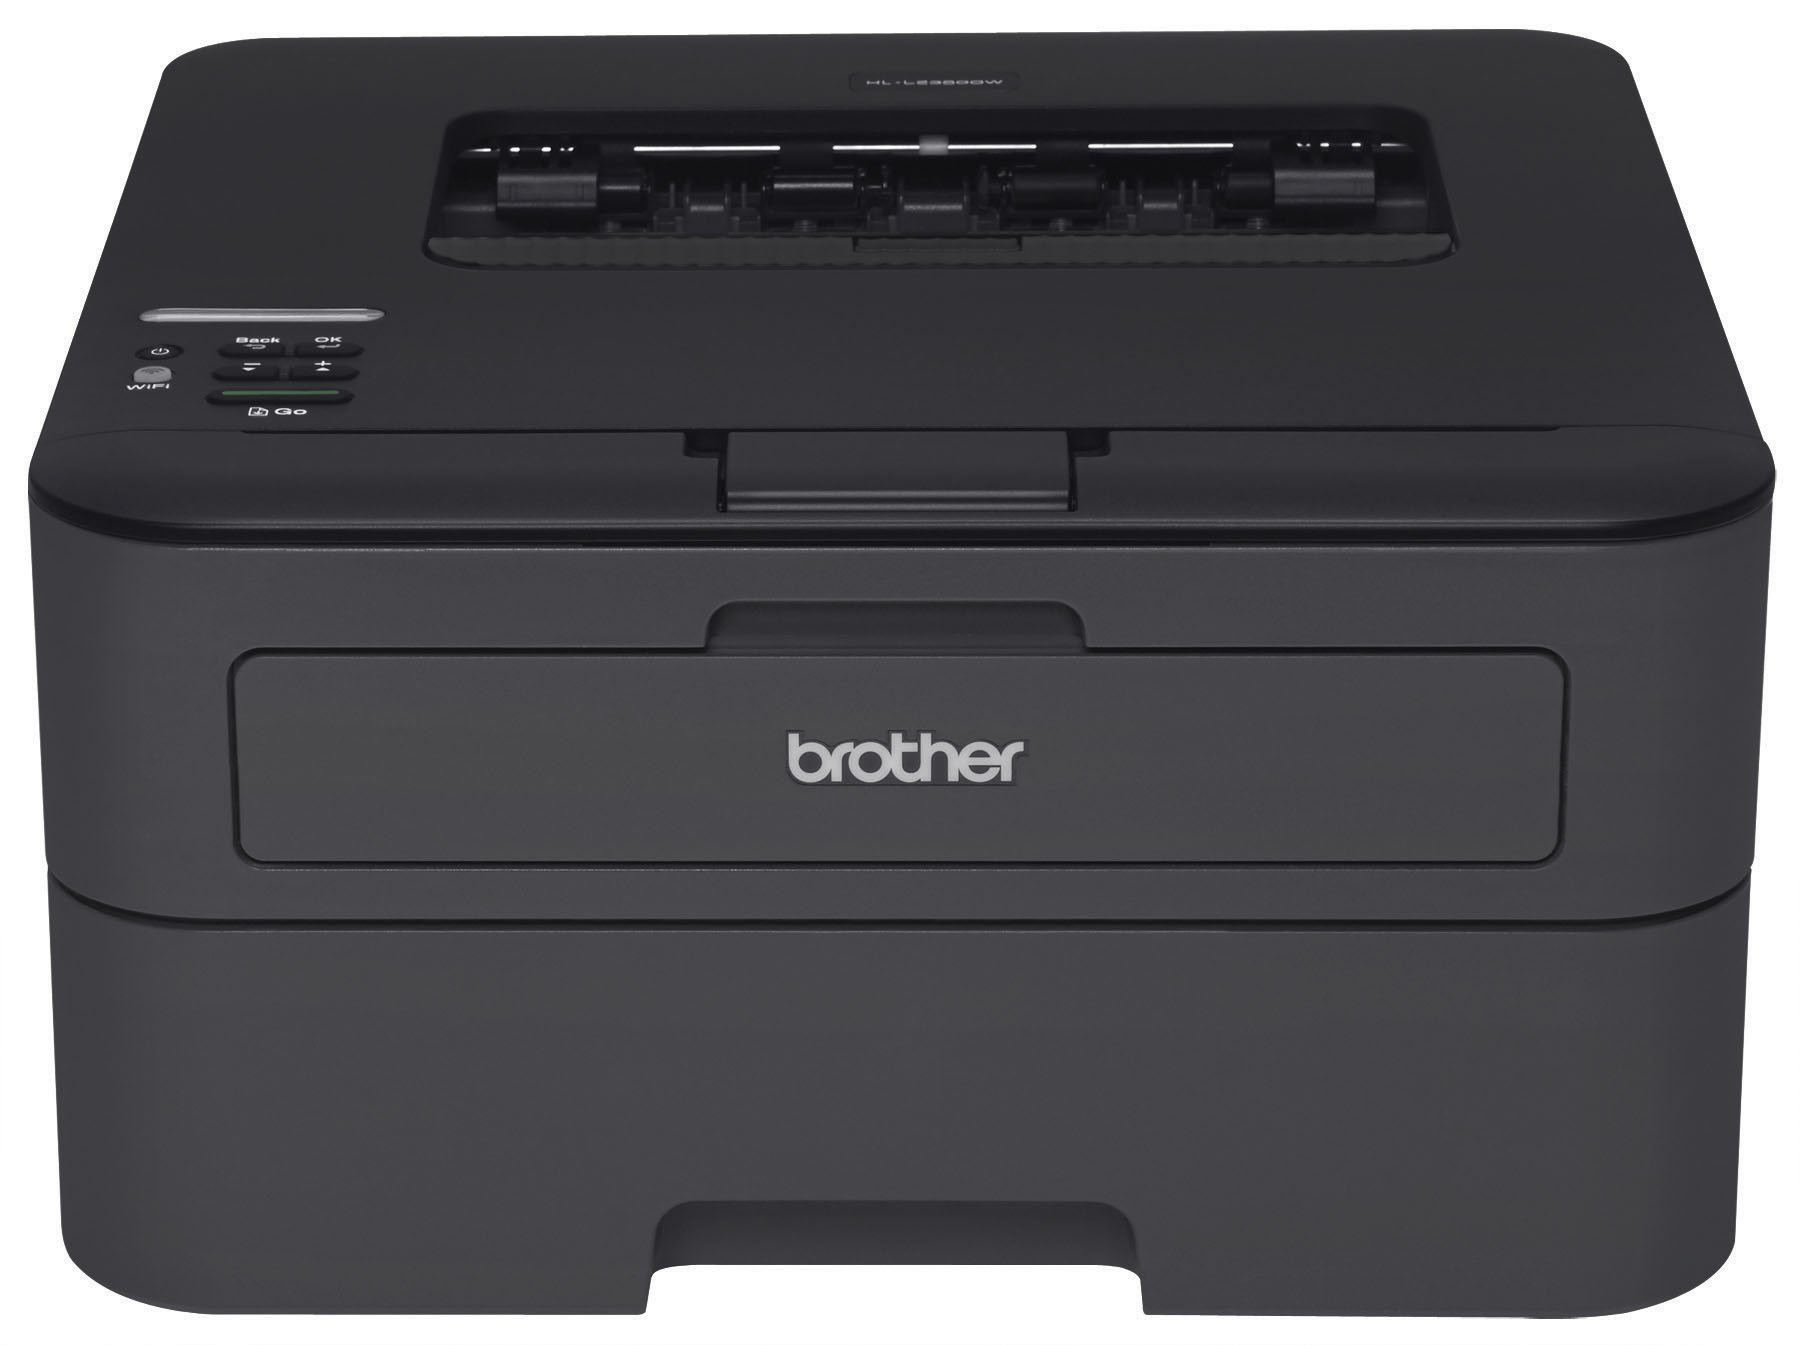 Brother Printer EHLL2340DW Wireless Monochrome Printer (Certified Refurbished) by Brother (Image #1)